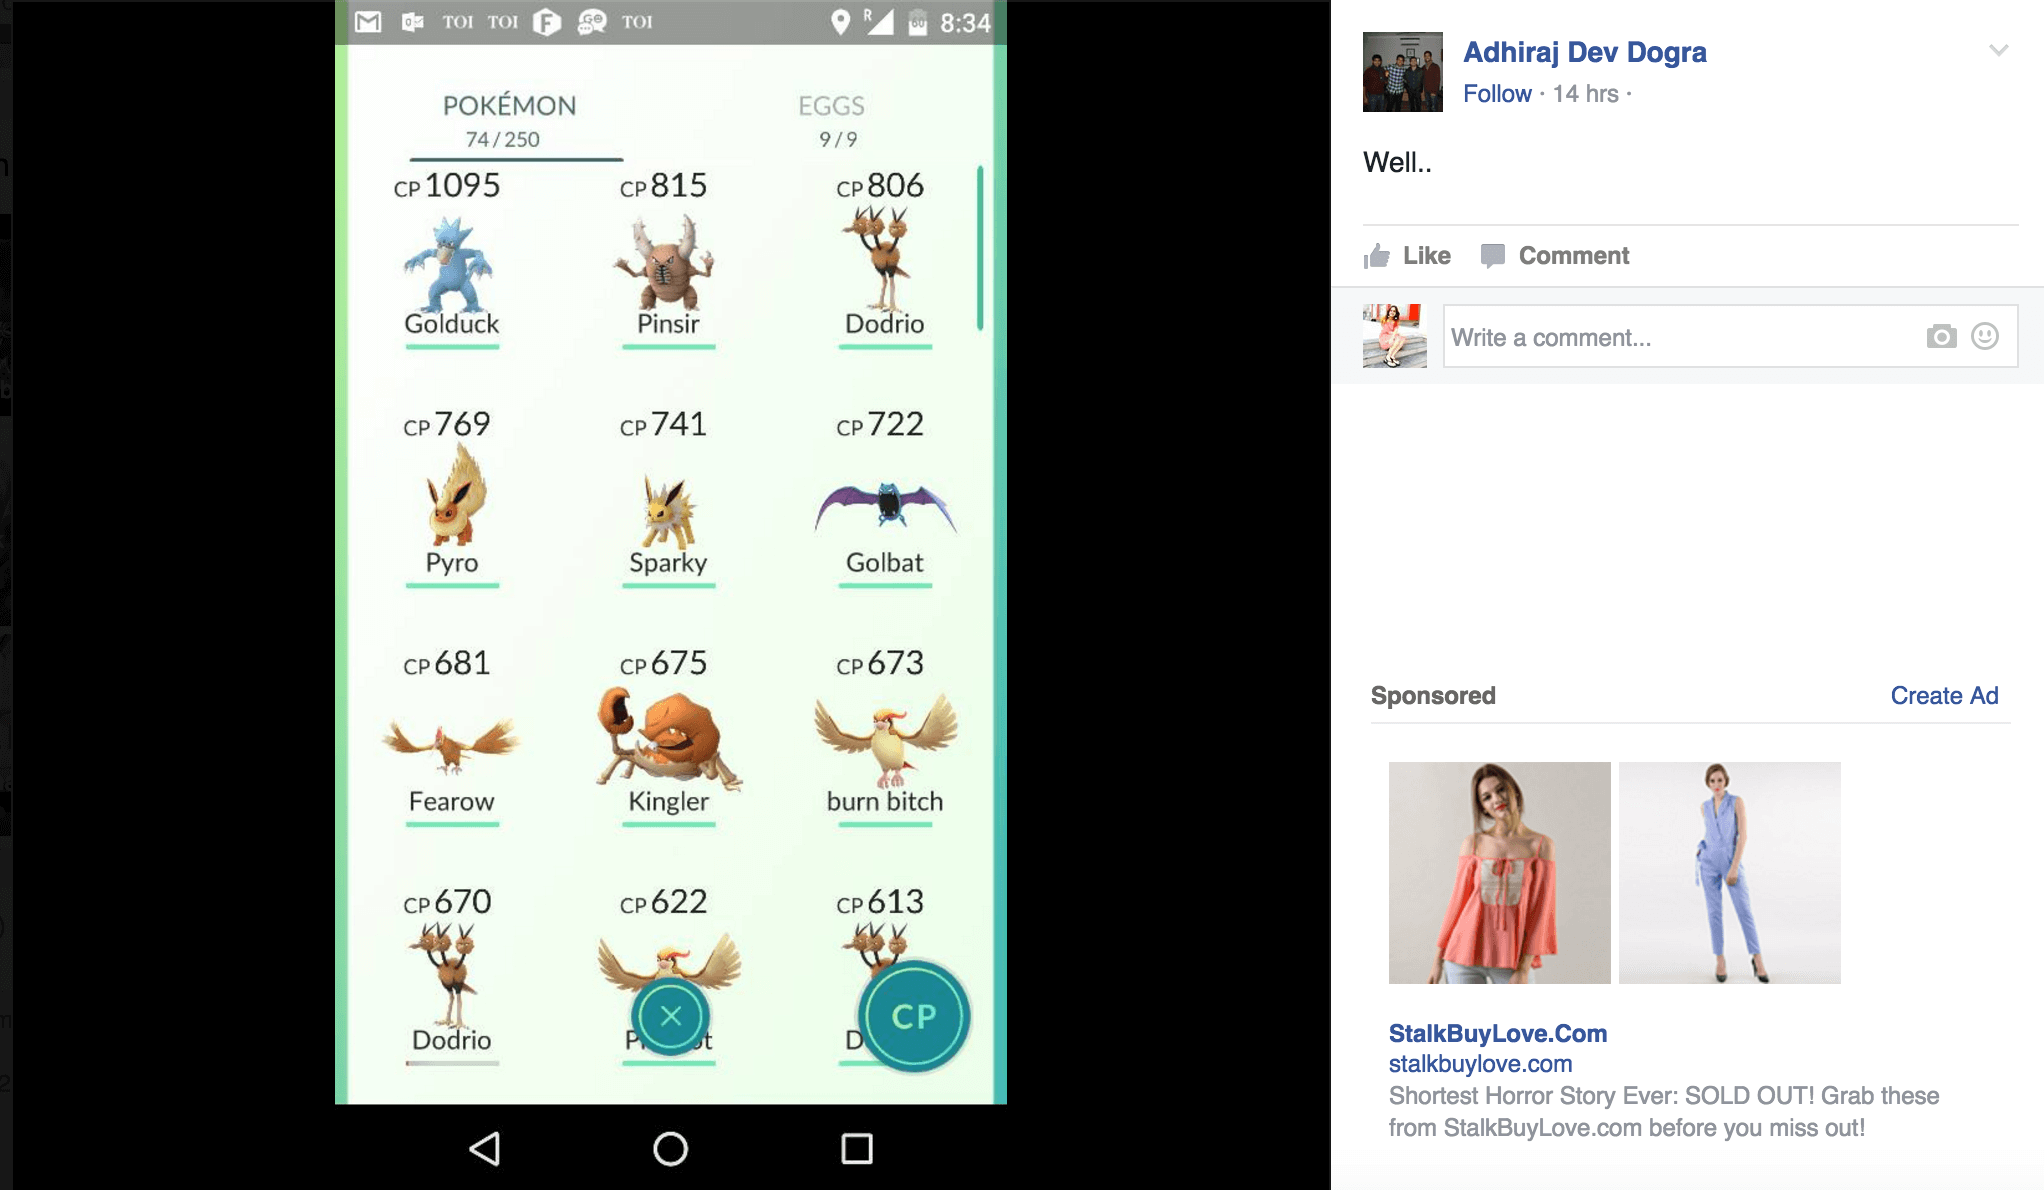 pokemongo_fb-926547-edited.png